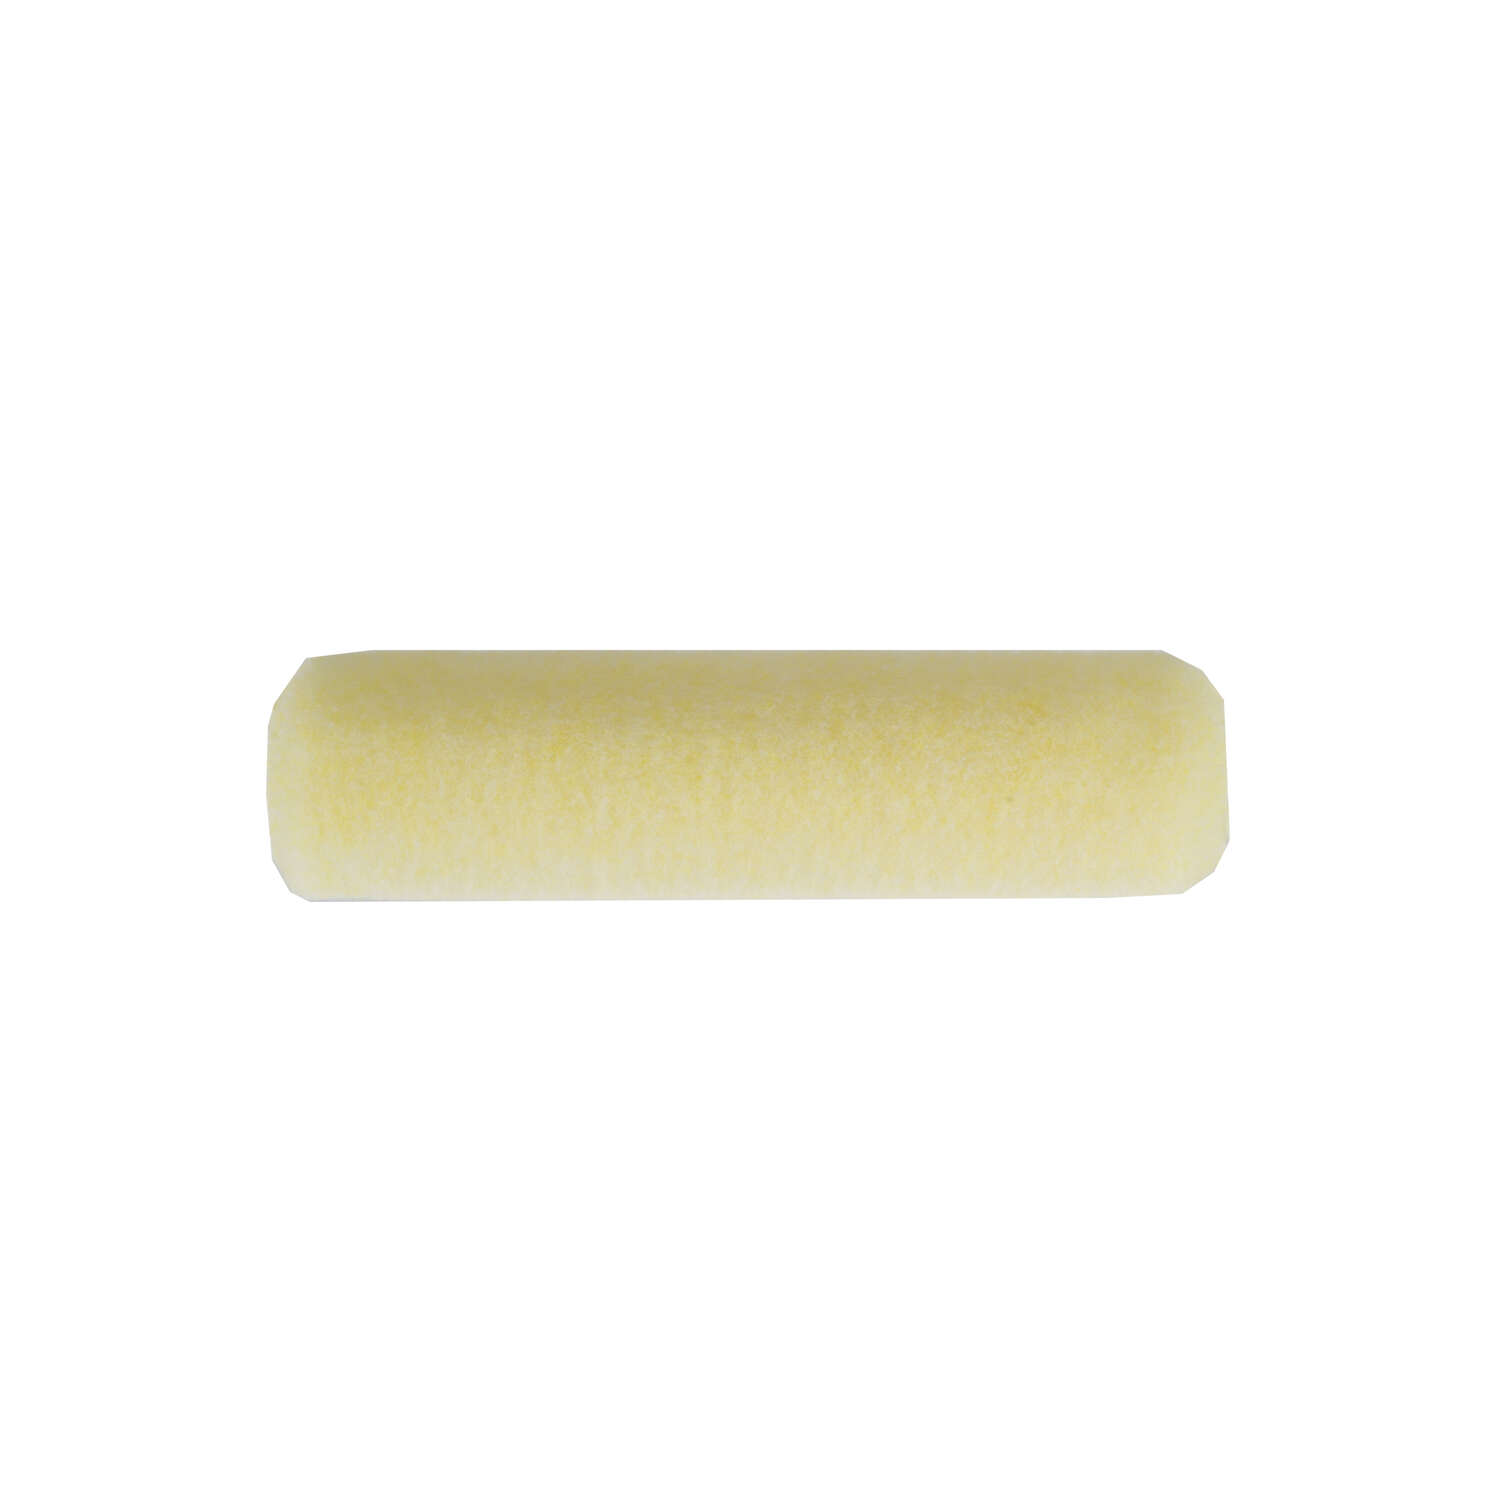 Wooster  Golden Flo  Fabric  3/8 in.  x 9 in. W Paint Roller Cover  For Medium Surfaces 1 pk